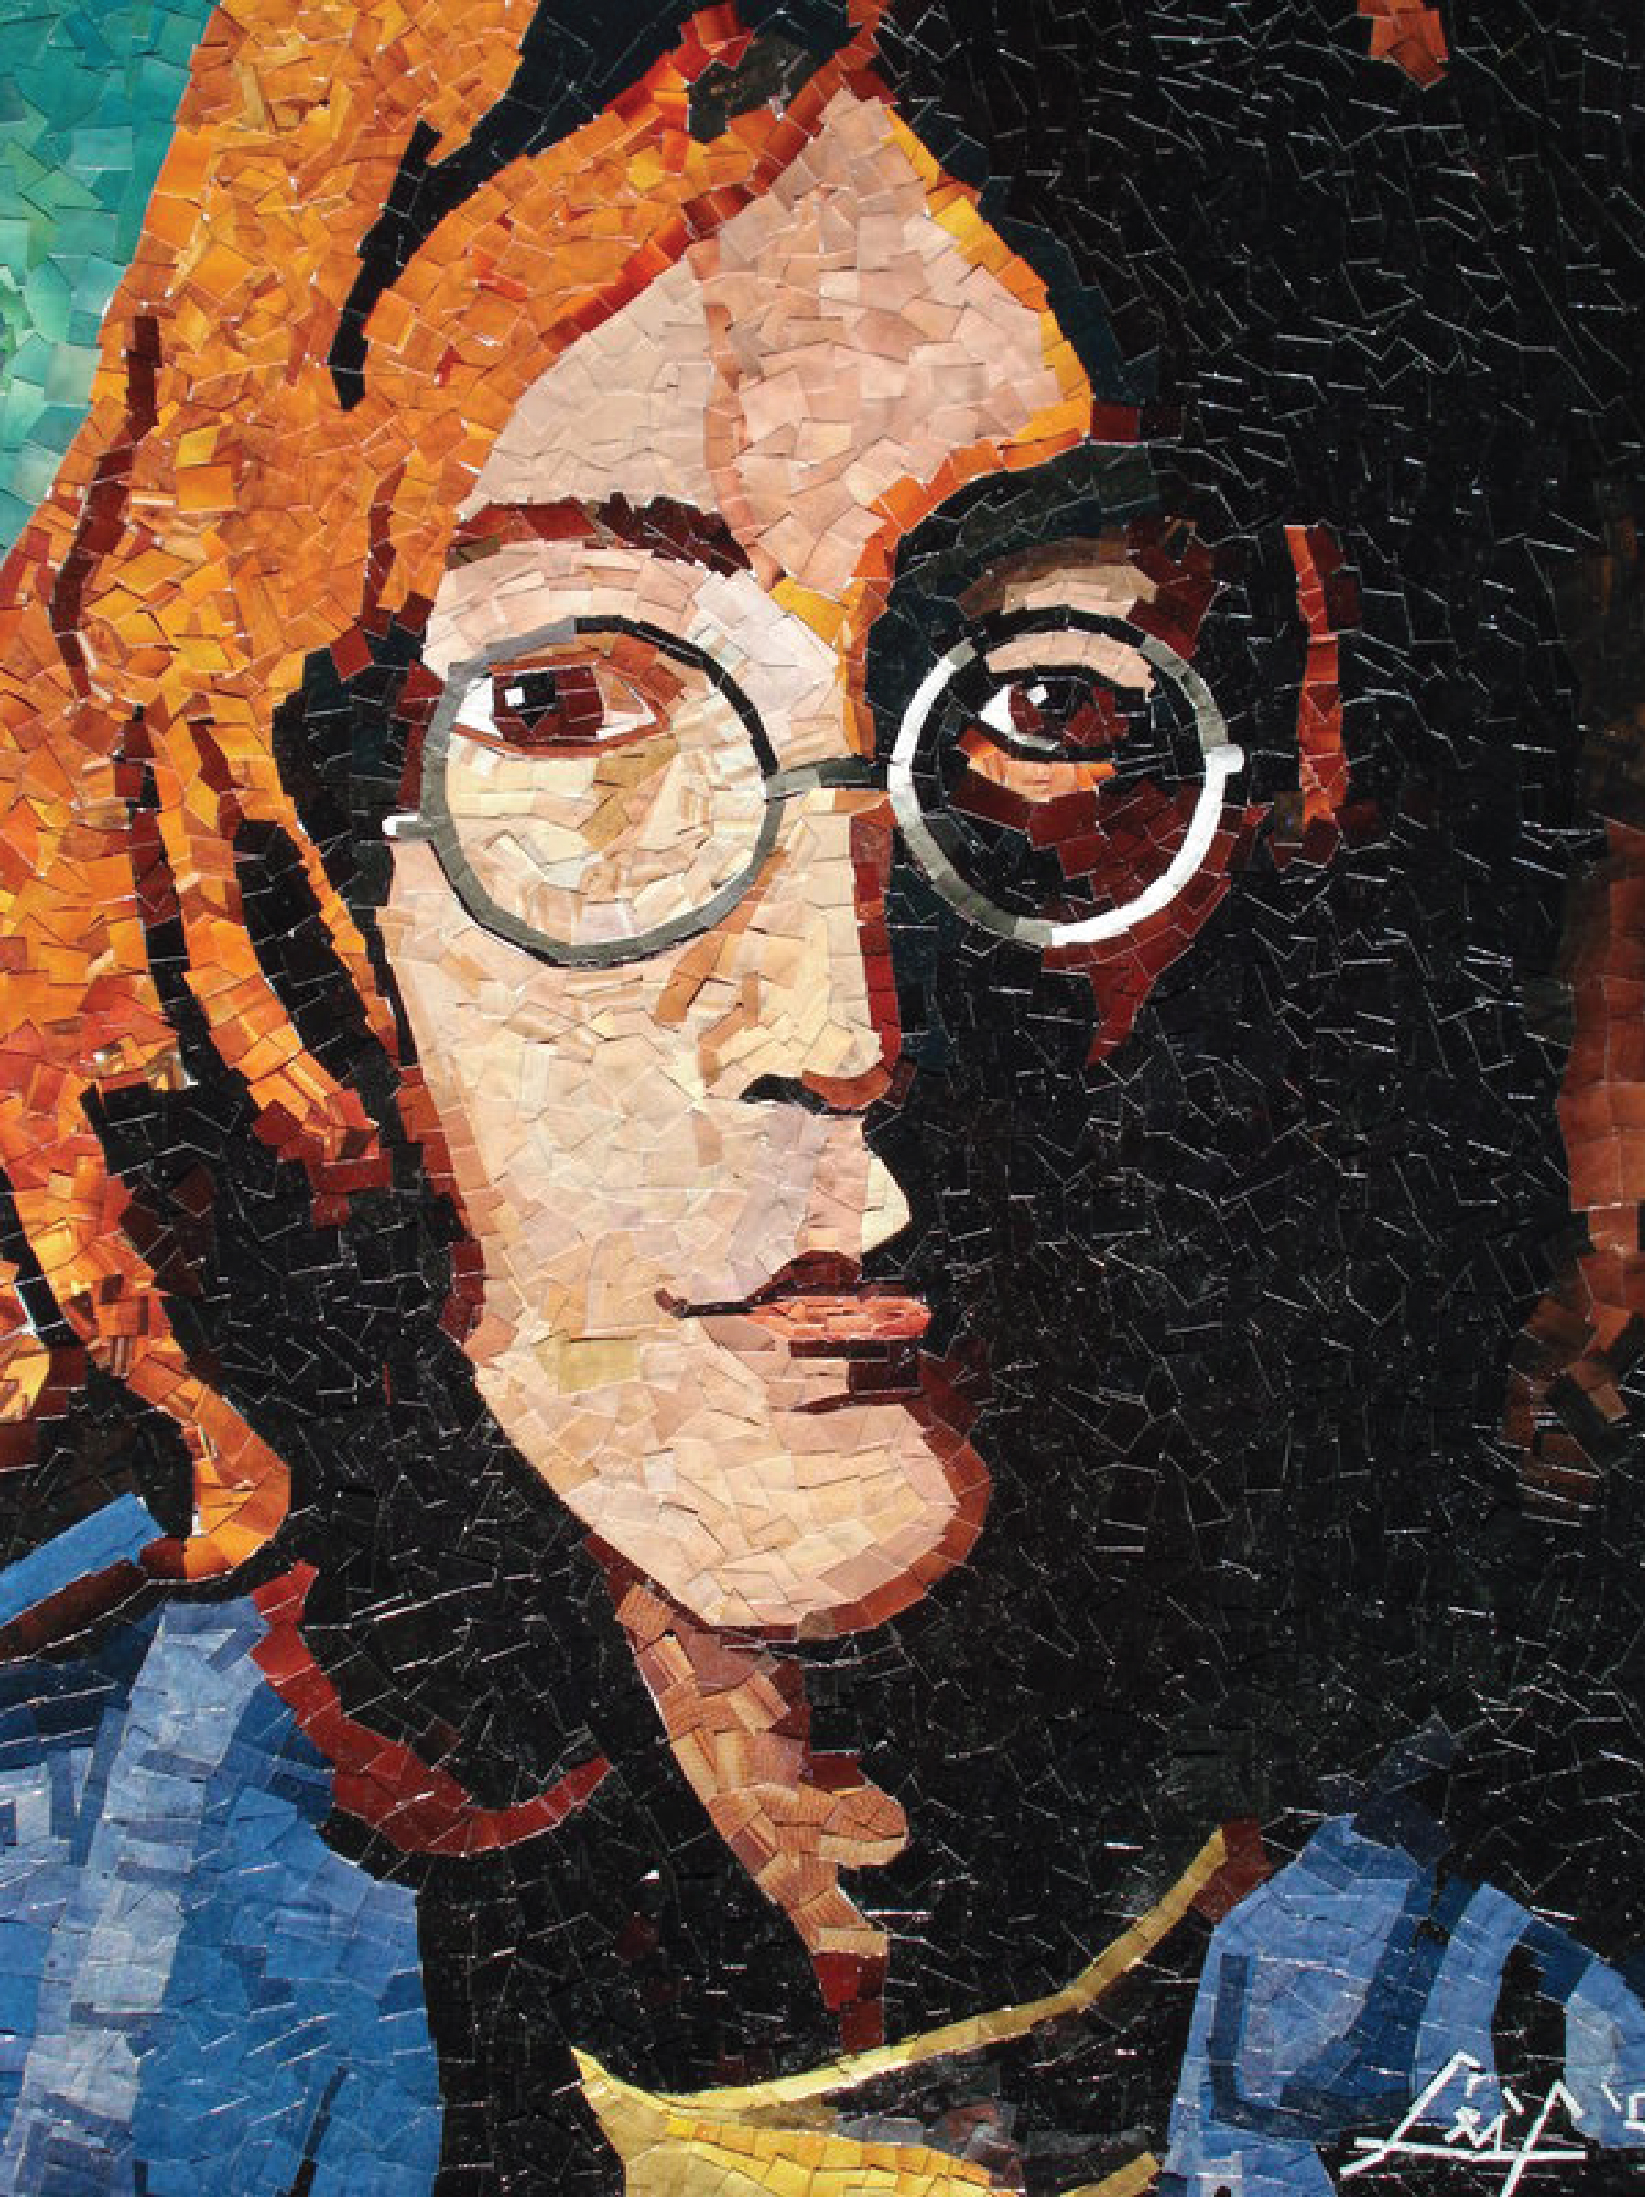 Pieces of Lennon, magazine cutouts, 2006